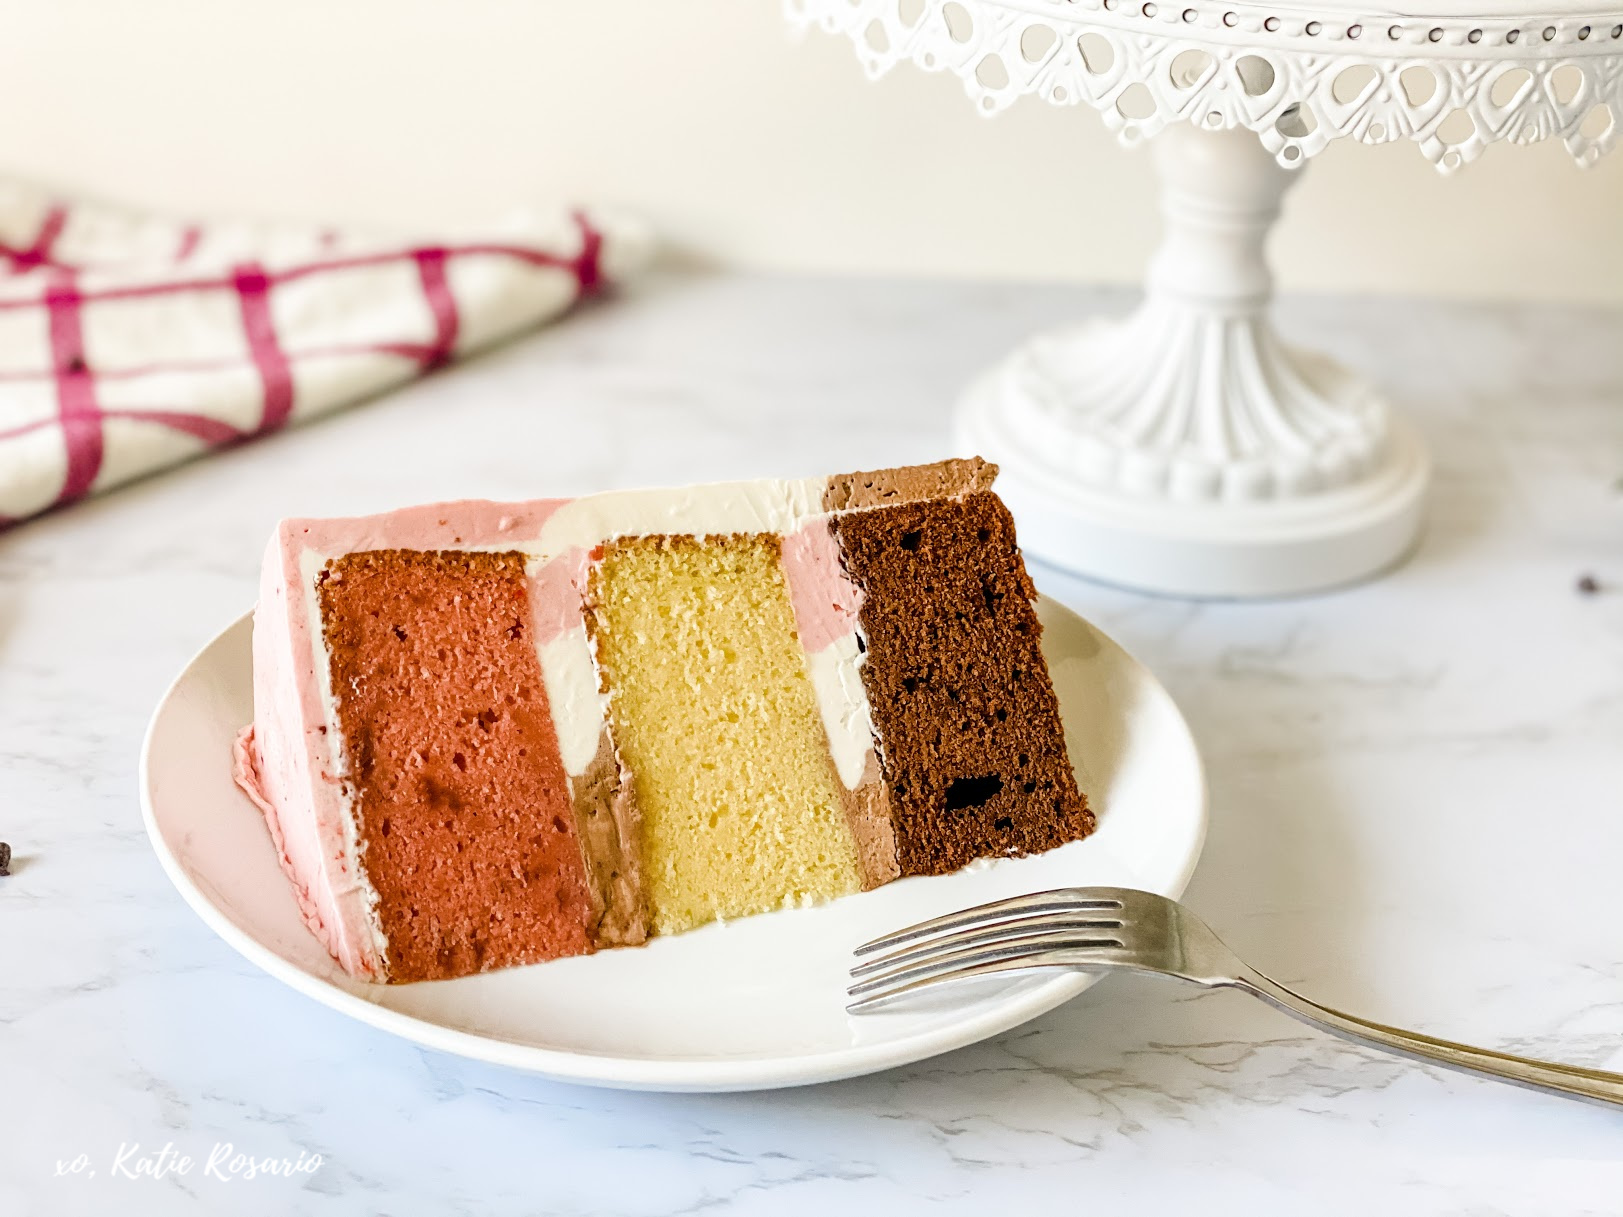 Is the summer heat getting you down? Learn how to turn a classic ice cream treat into a rich and decadent Neapolitan Cake. You'll see this is a simple design cake, and that's done on purpose, so you can focus on building the flavors and perfecting the technique of smoothing the sides of the cake. #xokatierosario #neapolitancake #neapolitancakerecipe #icecreamcake #cakedecoratingtips